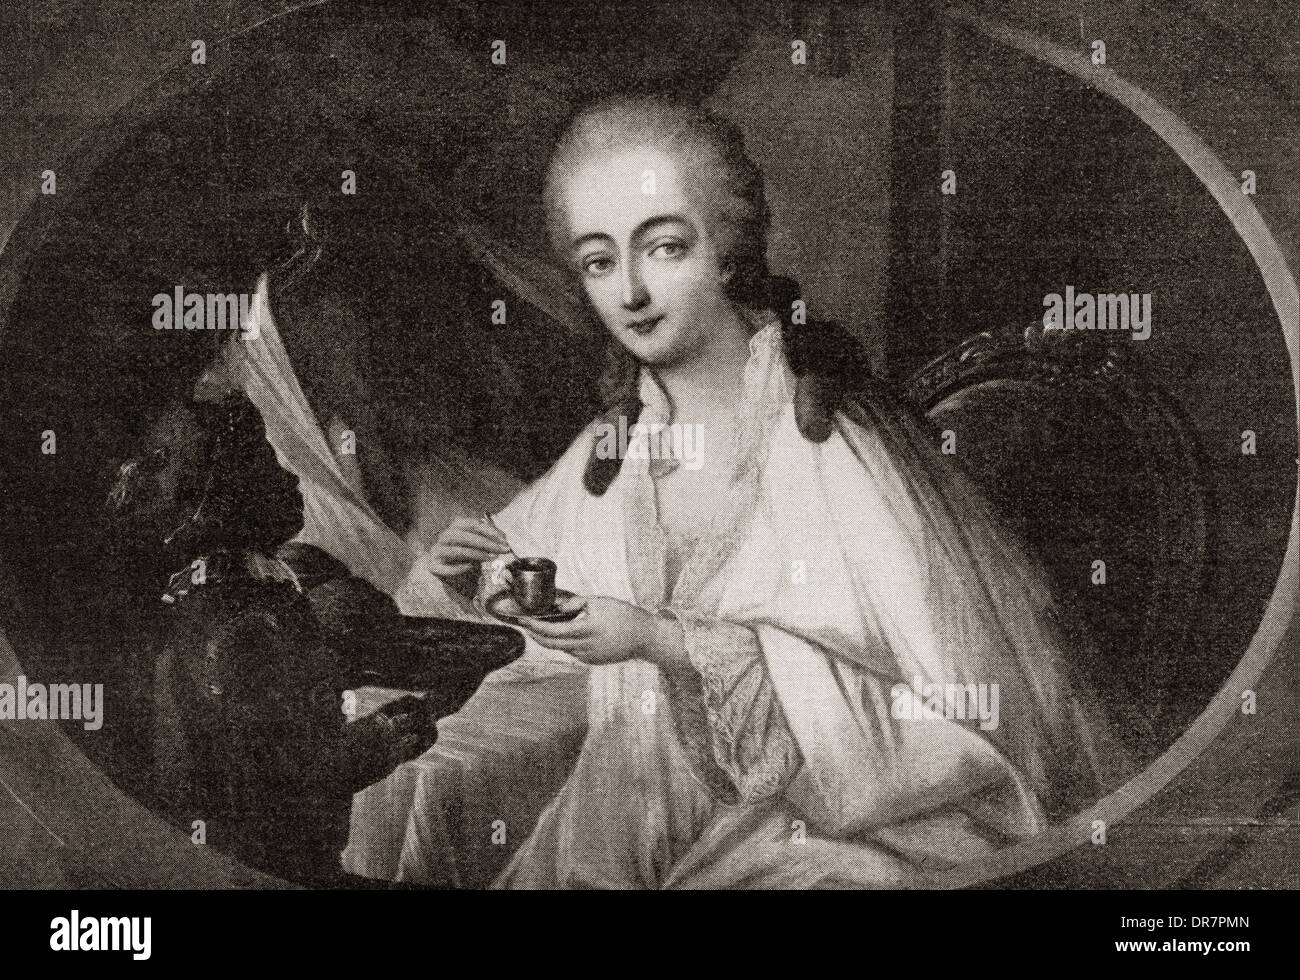 Jeanne Bécu, comtesse du Barry aka Madame du Barry, 1743 – 1793, after Auguste de Creuse. - Stock Image